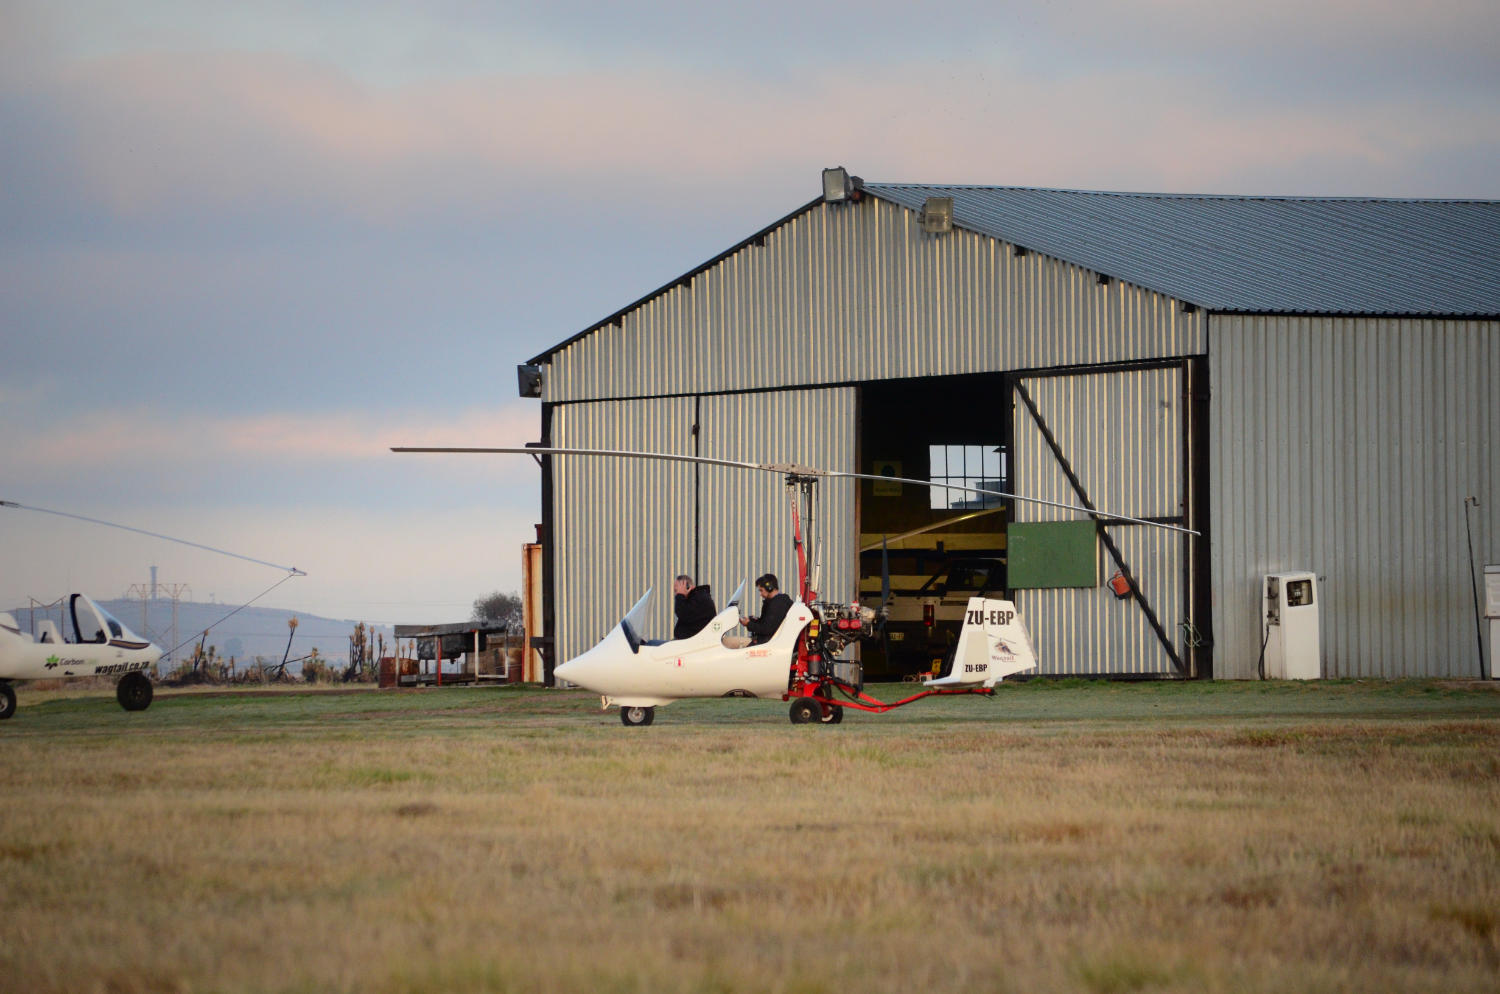 Wagtail Aviation